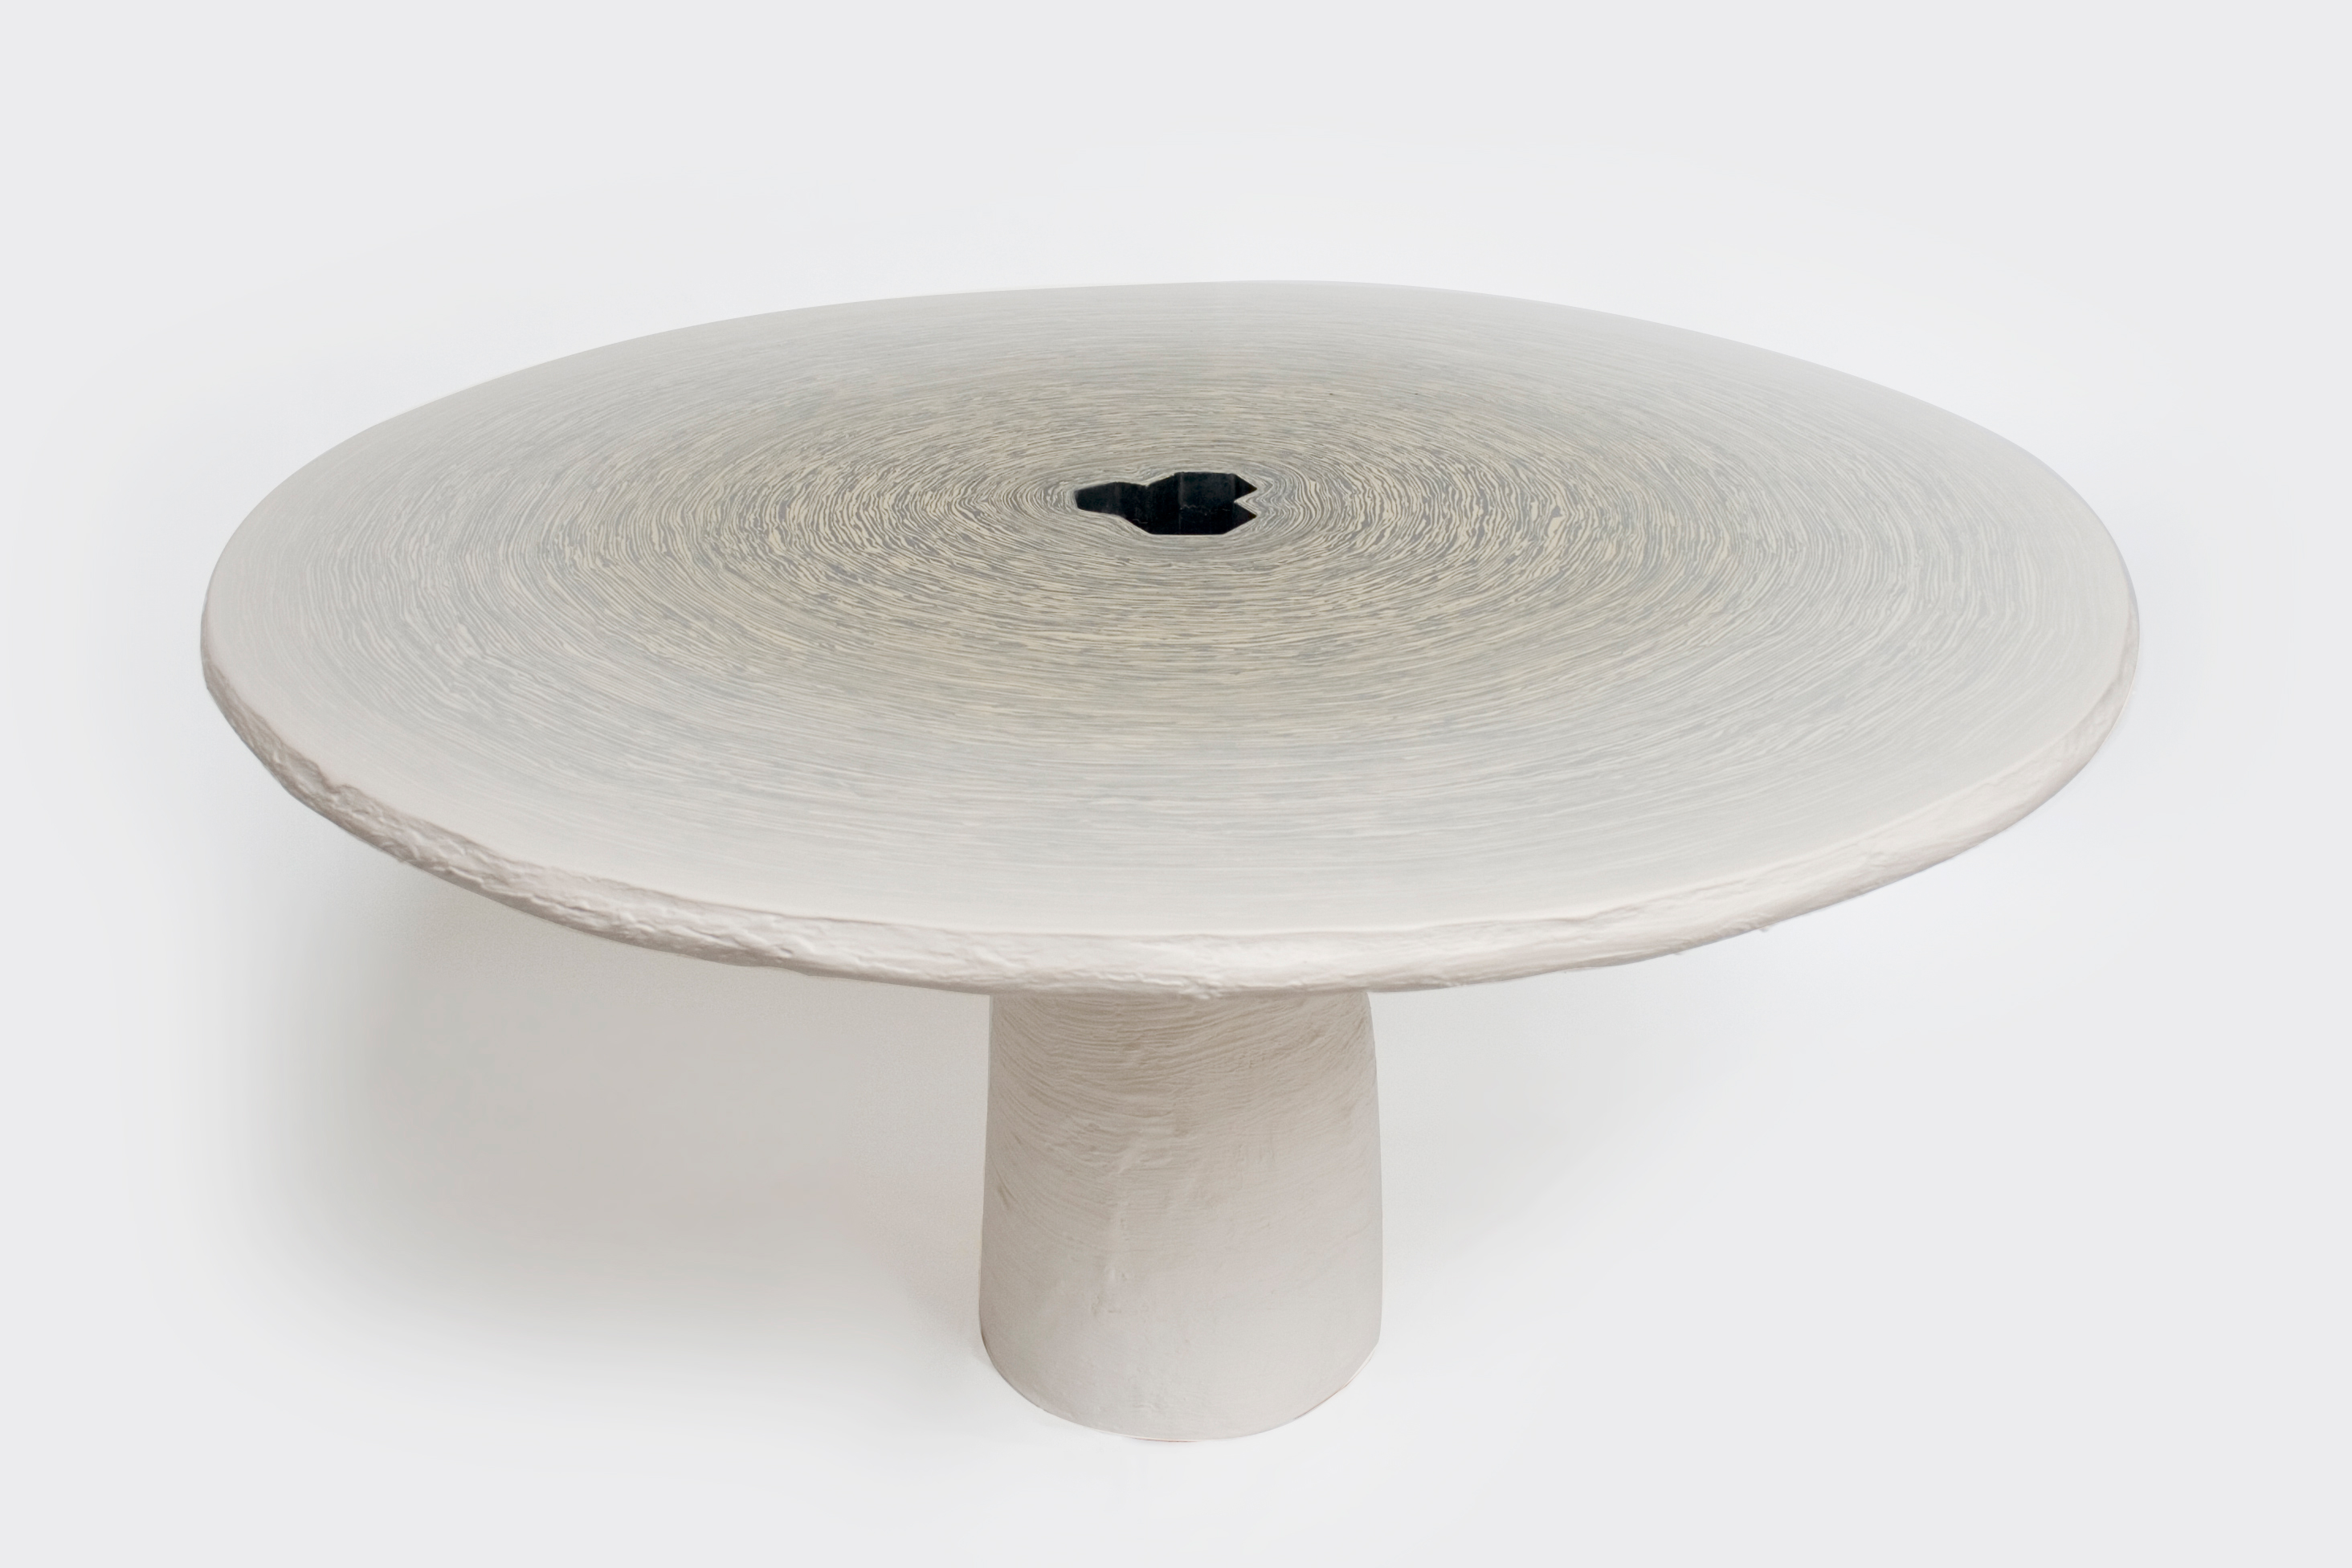 Fuzz Dining Table 2014